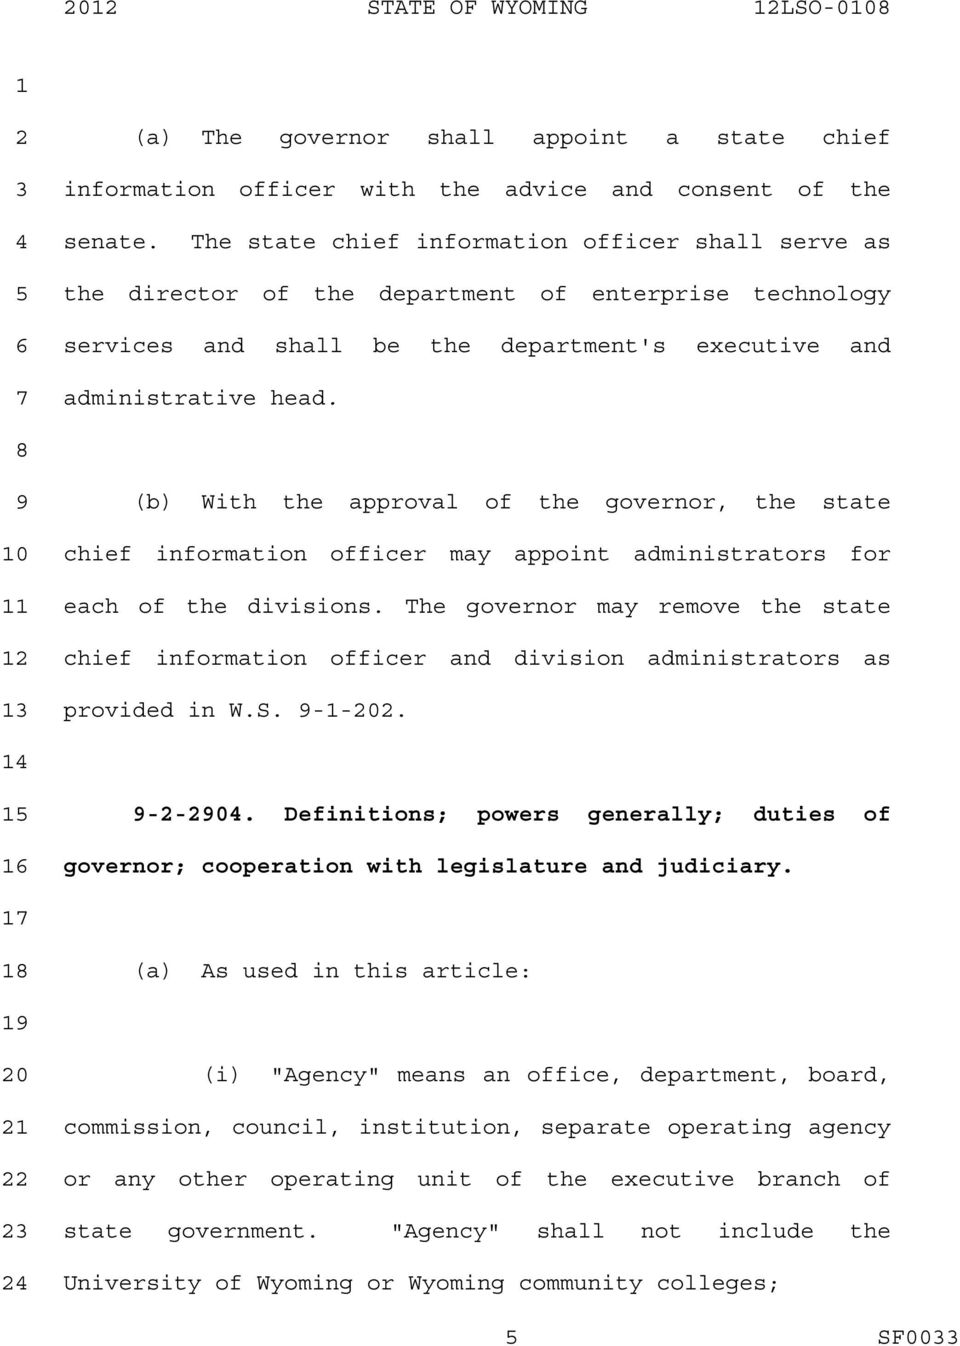 (b) With the approval of the governor, the state chief information officer may appoint administrators for each of the divisions.